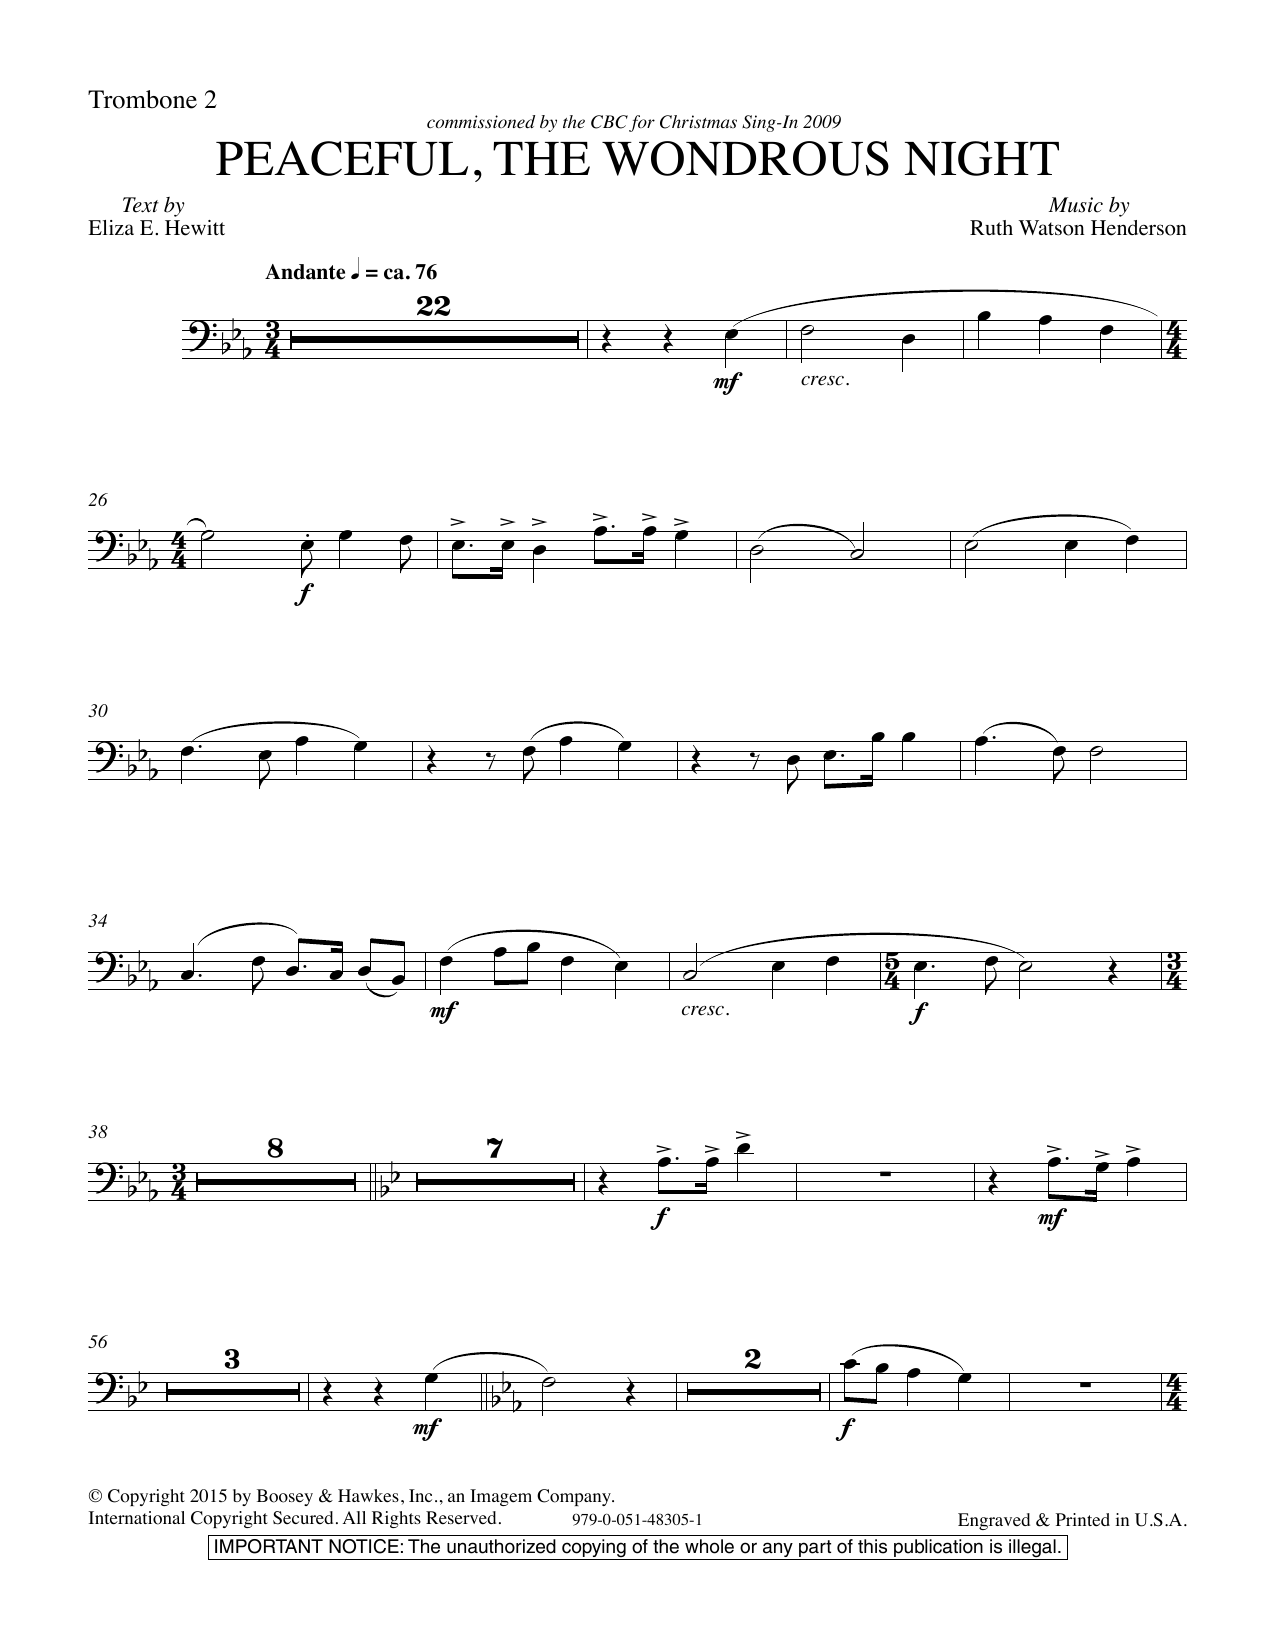 Ruth Watson Henderson Peaceful the Wondrous Night - Trombone 2 sheet music notes and chords. Download Printable PDF.